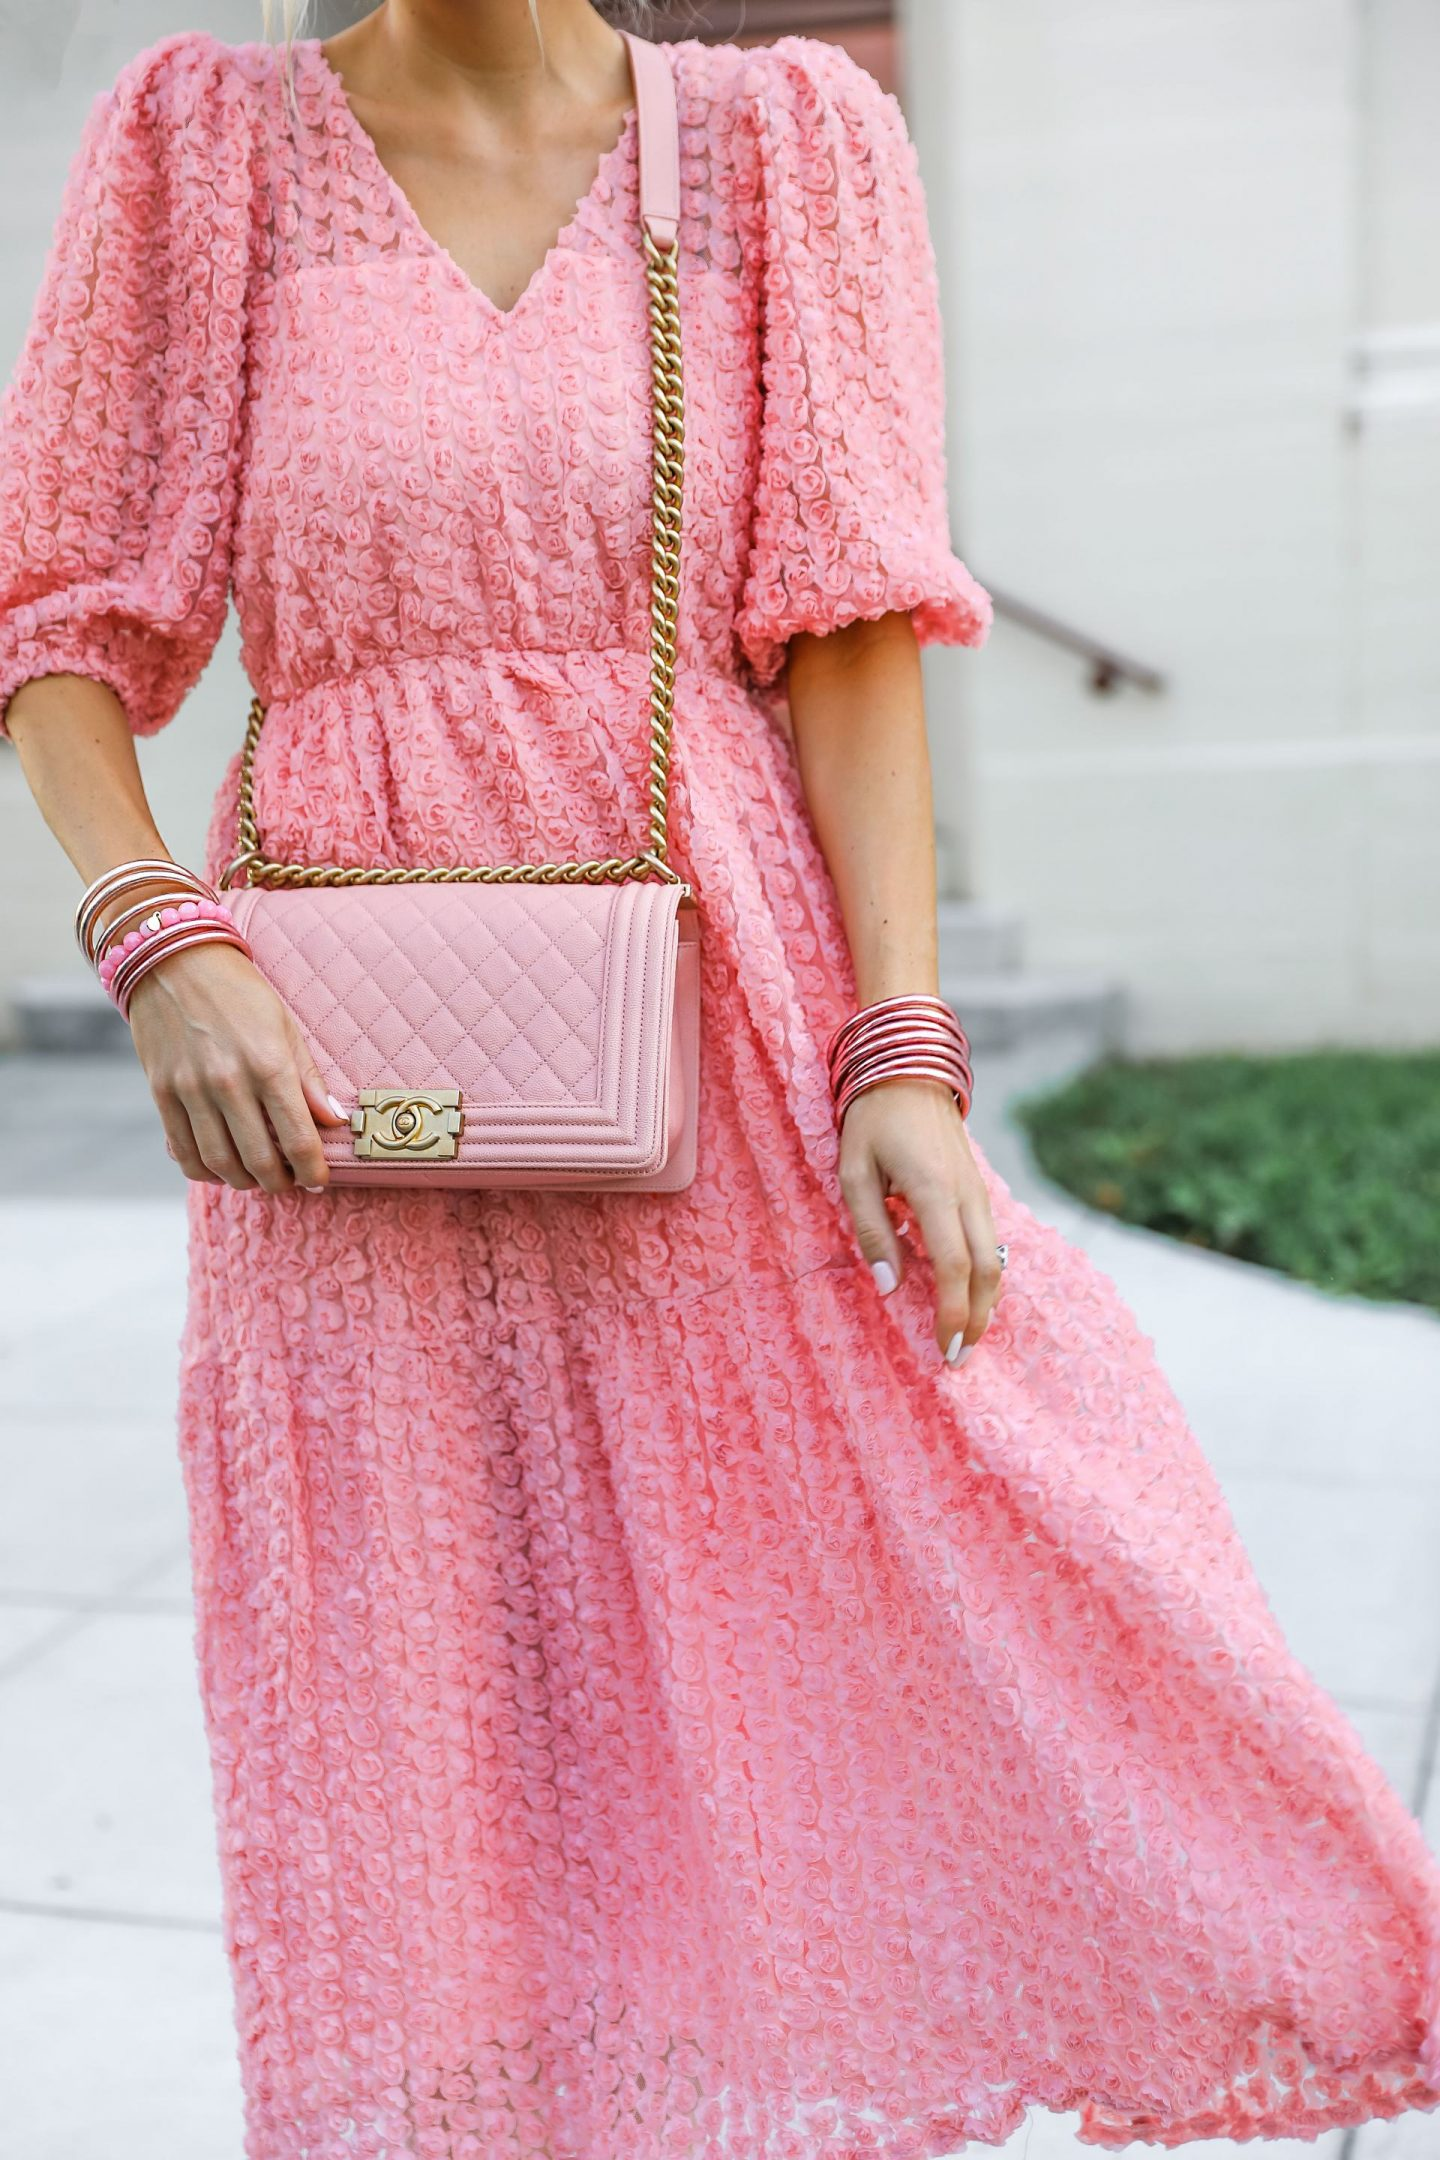 Dusty rose midi dress with chanel boy bag, feminine style by fashion blogger Lombard & Fifth.